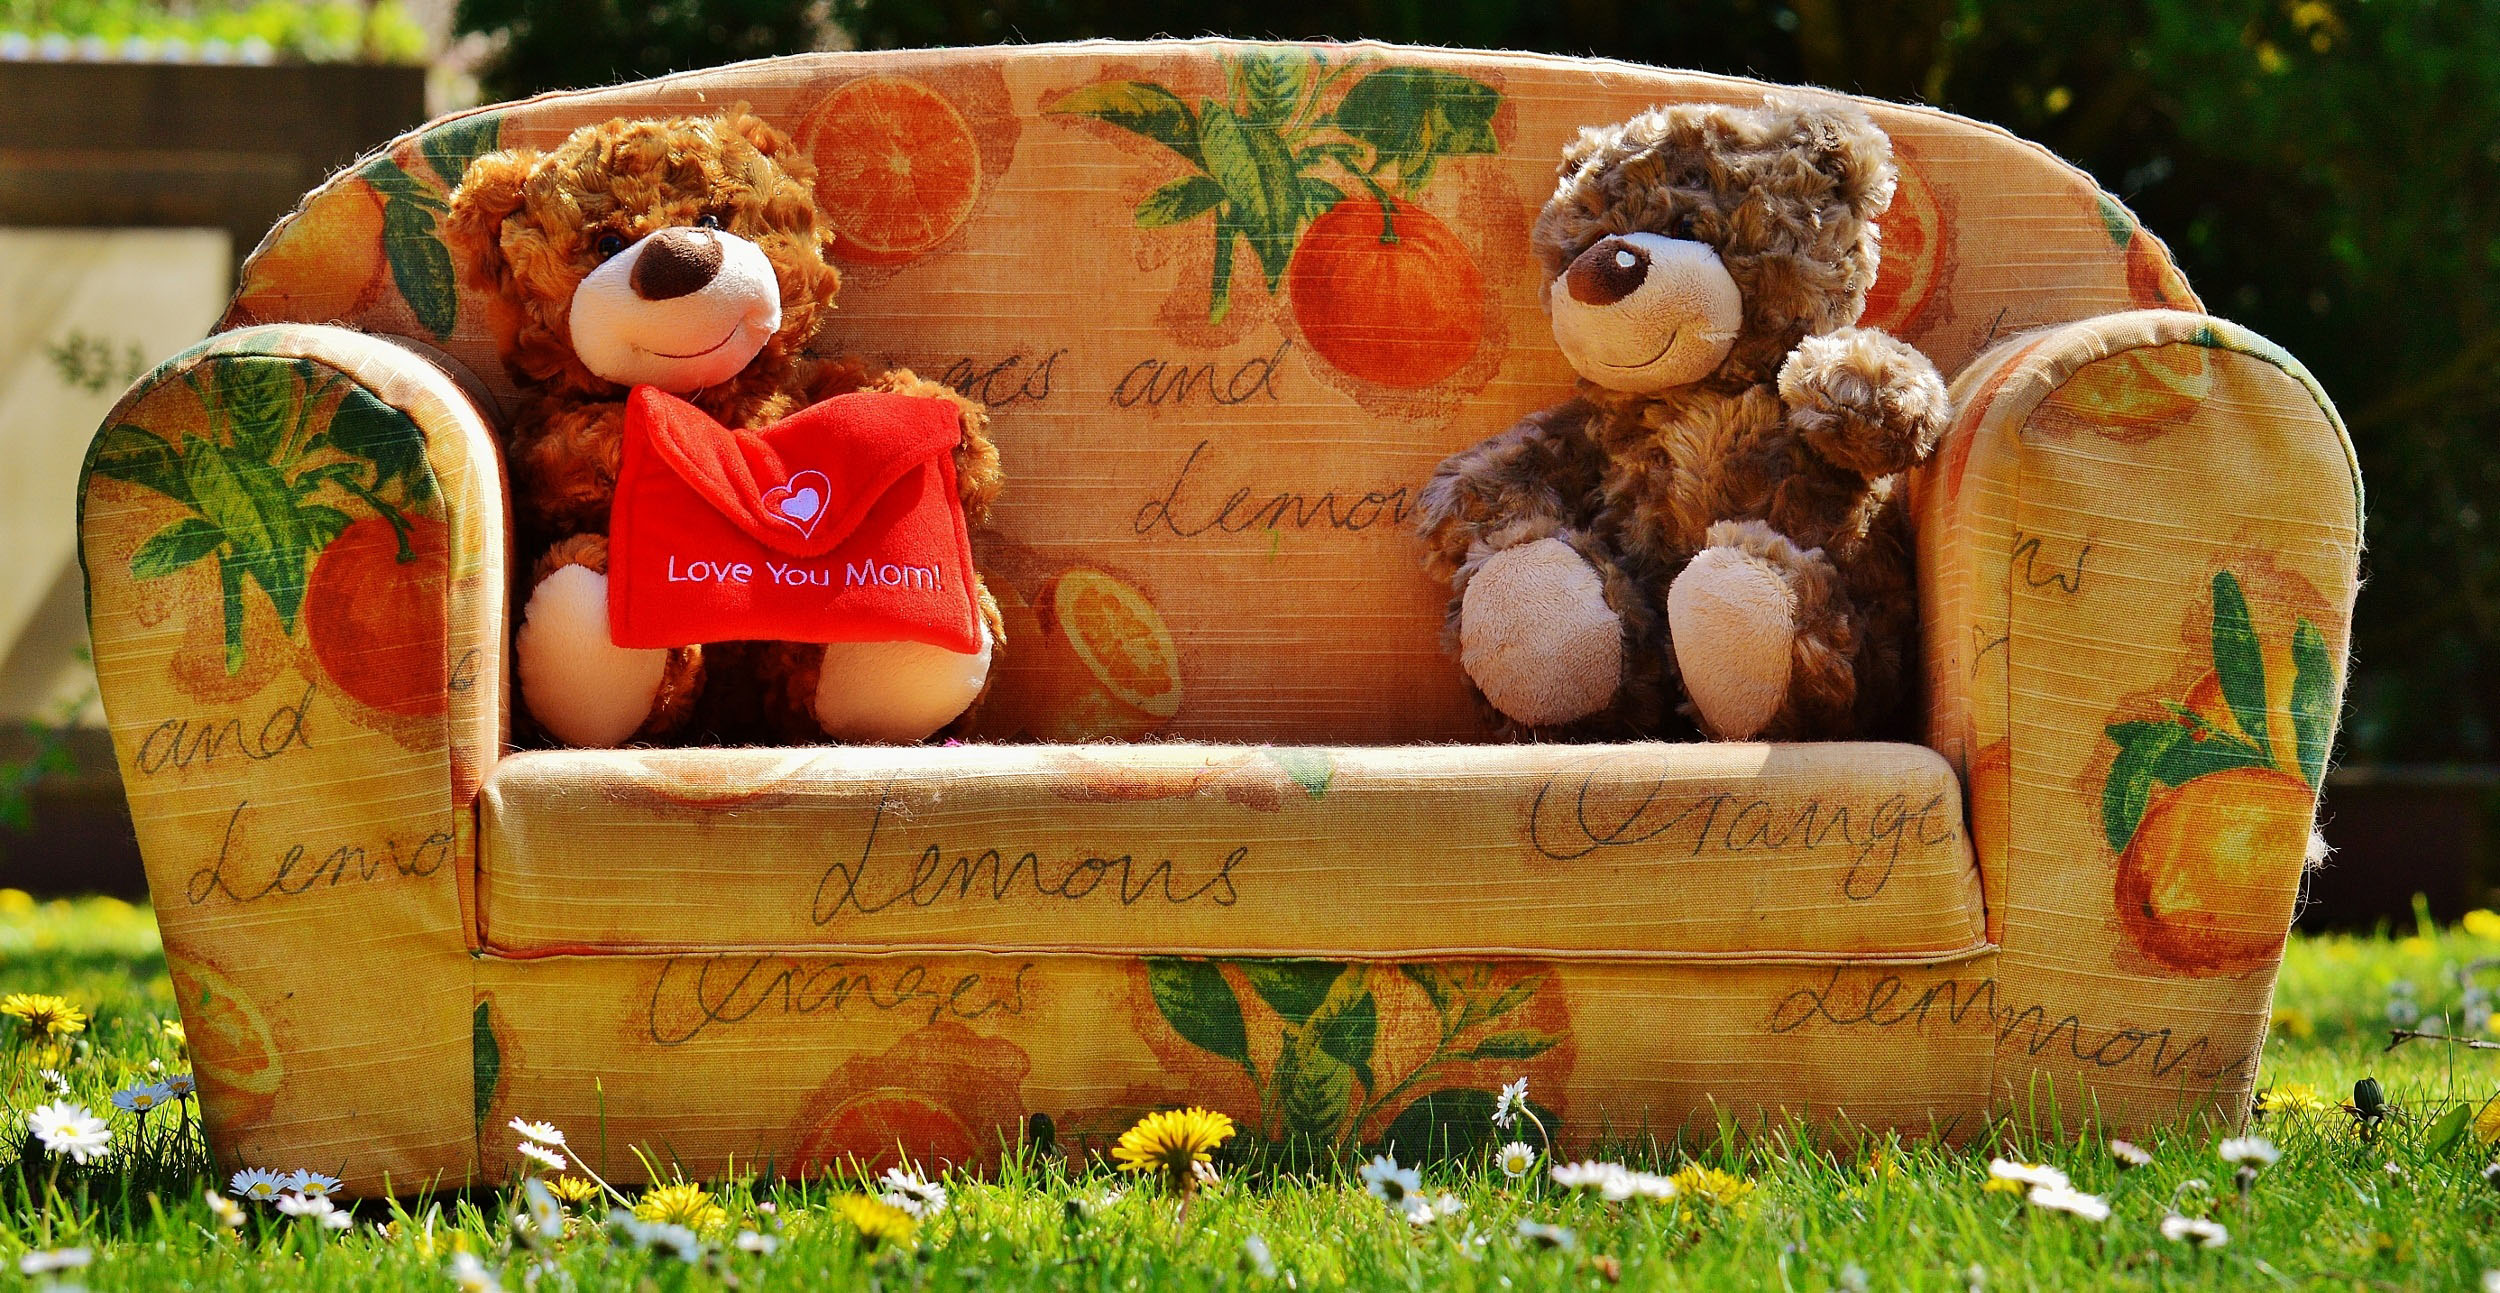 love ,mother's day,teddy,welcome